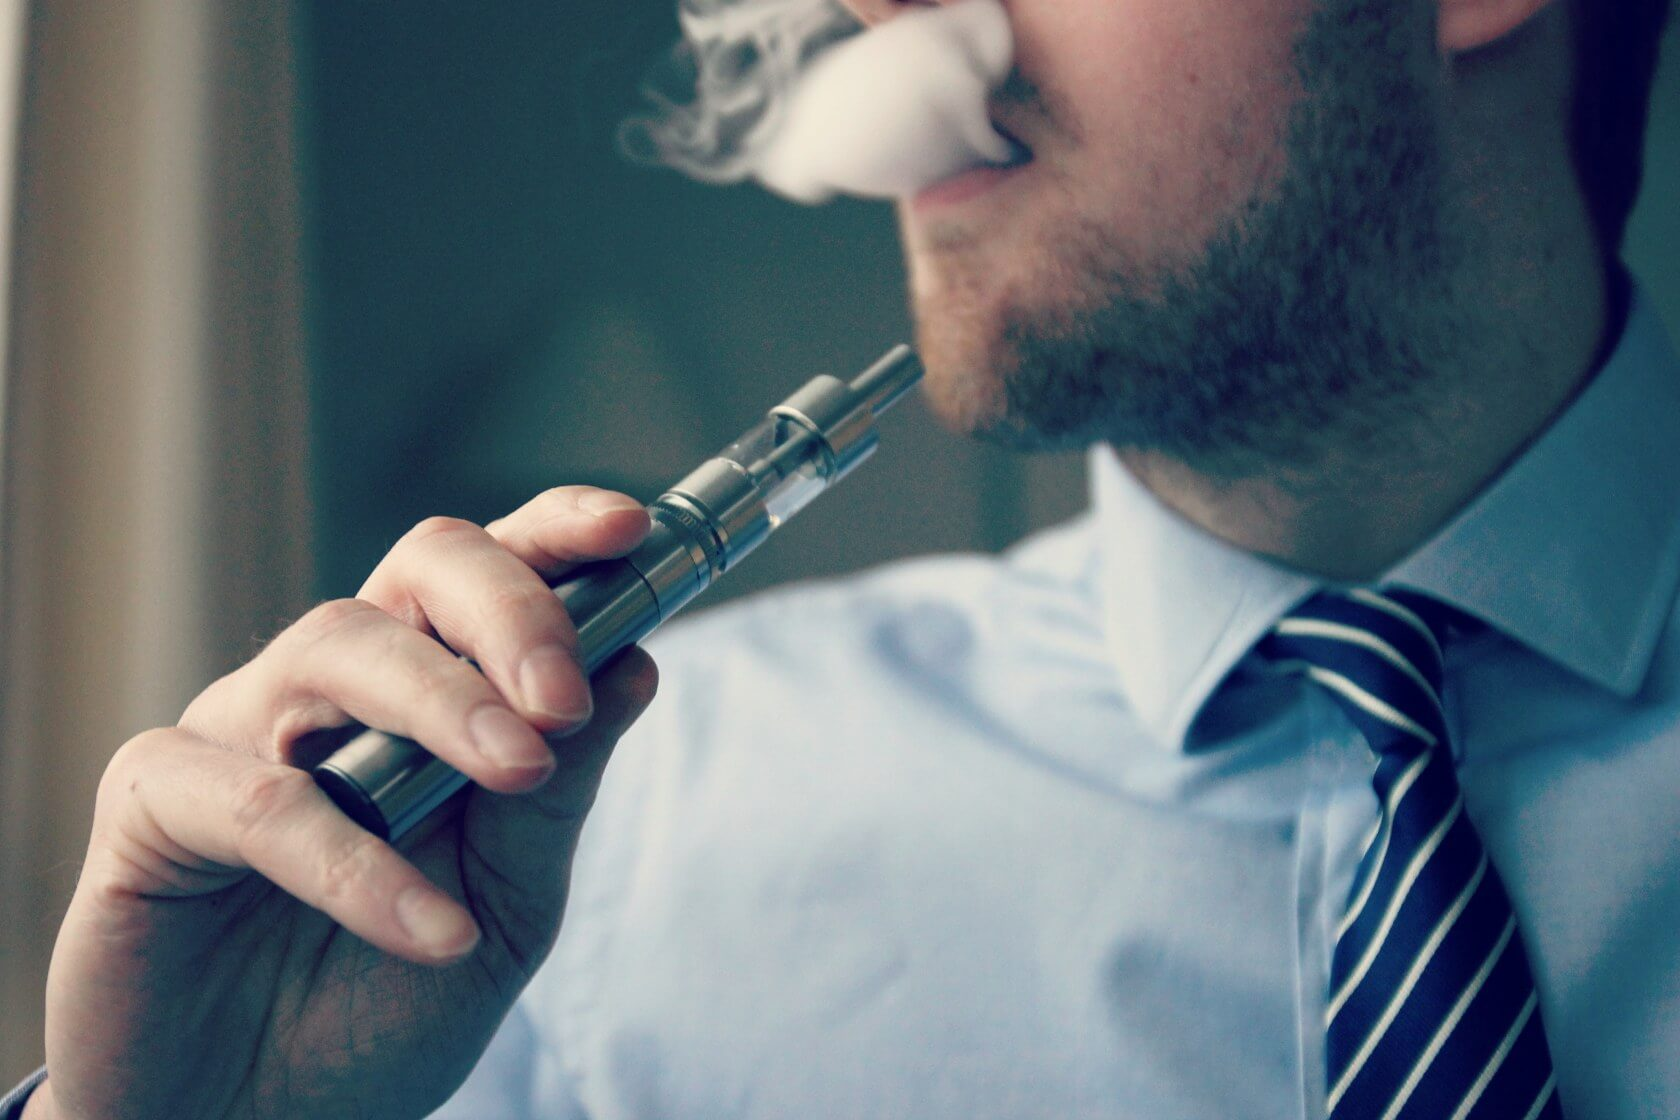 Health Officials Issue New Warning On Vaping-Related Illnesses After New Fatalities